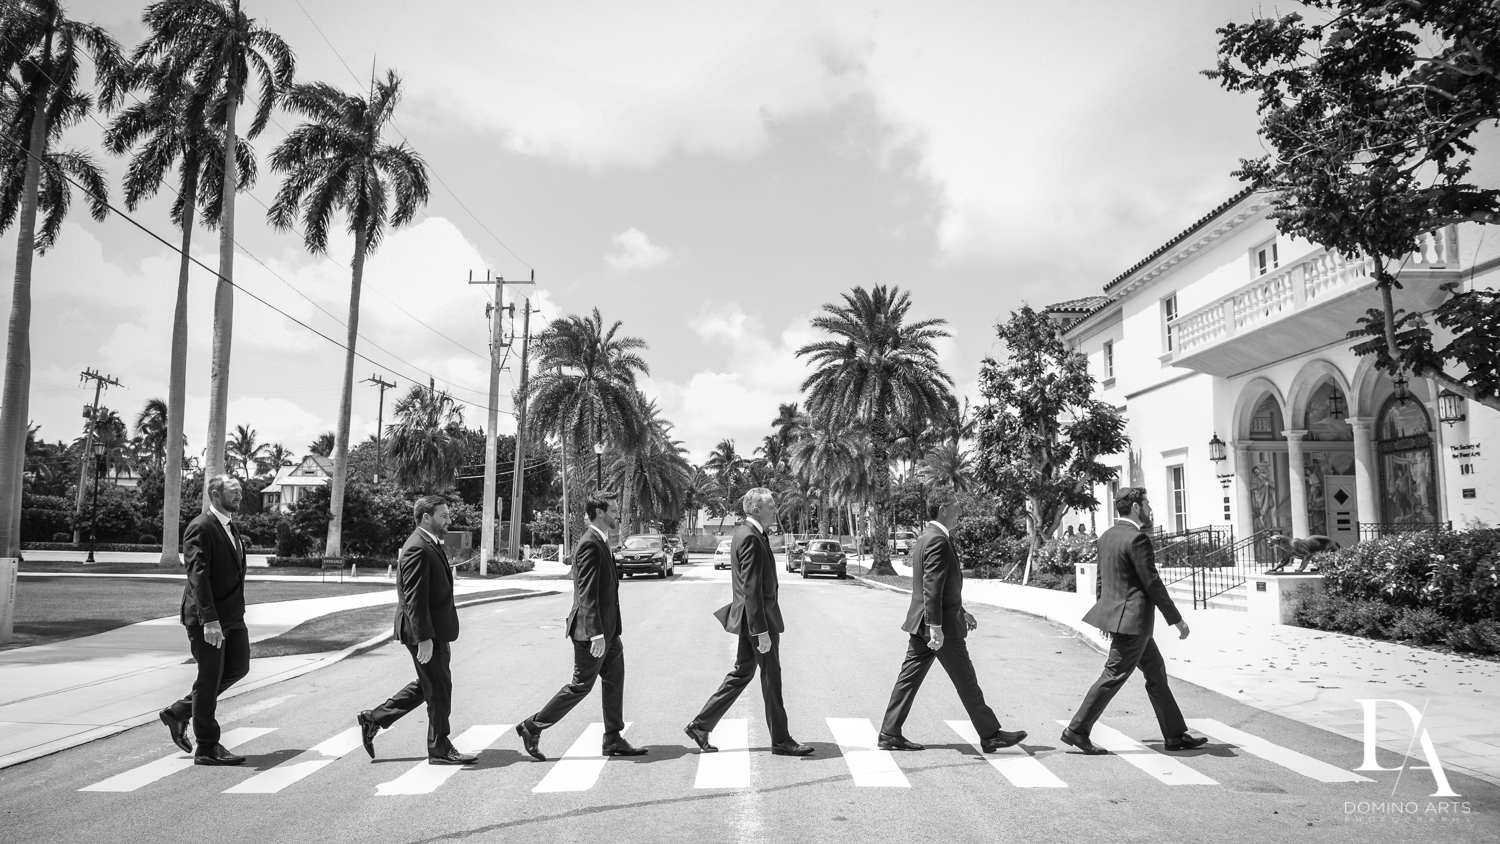 beatles walking street pic at Vintage Garden Wedding at Flagler Museum Palm Beach by Domino Arts Photography